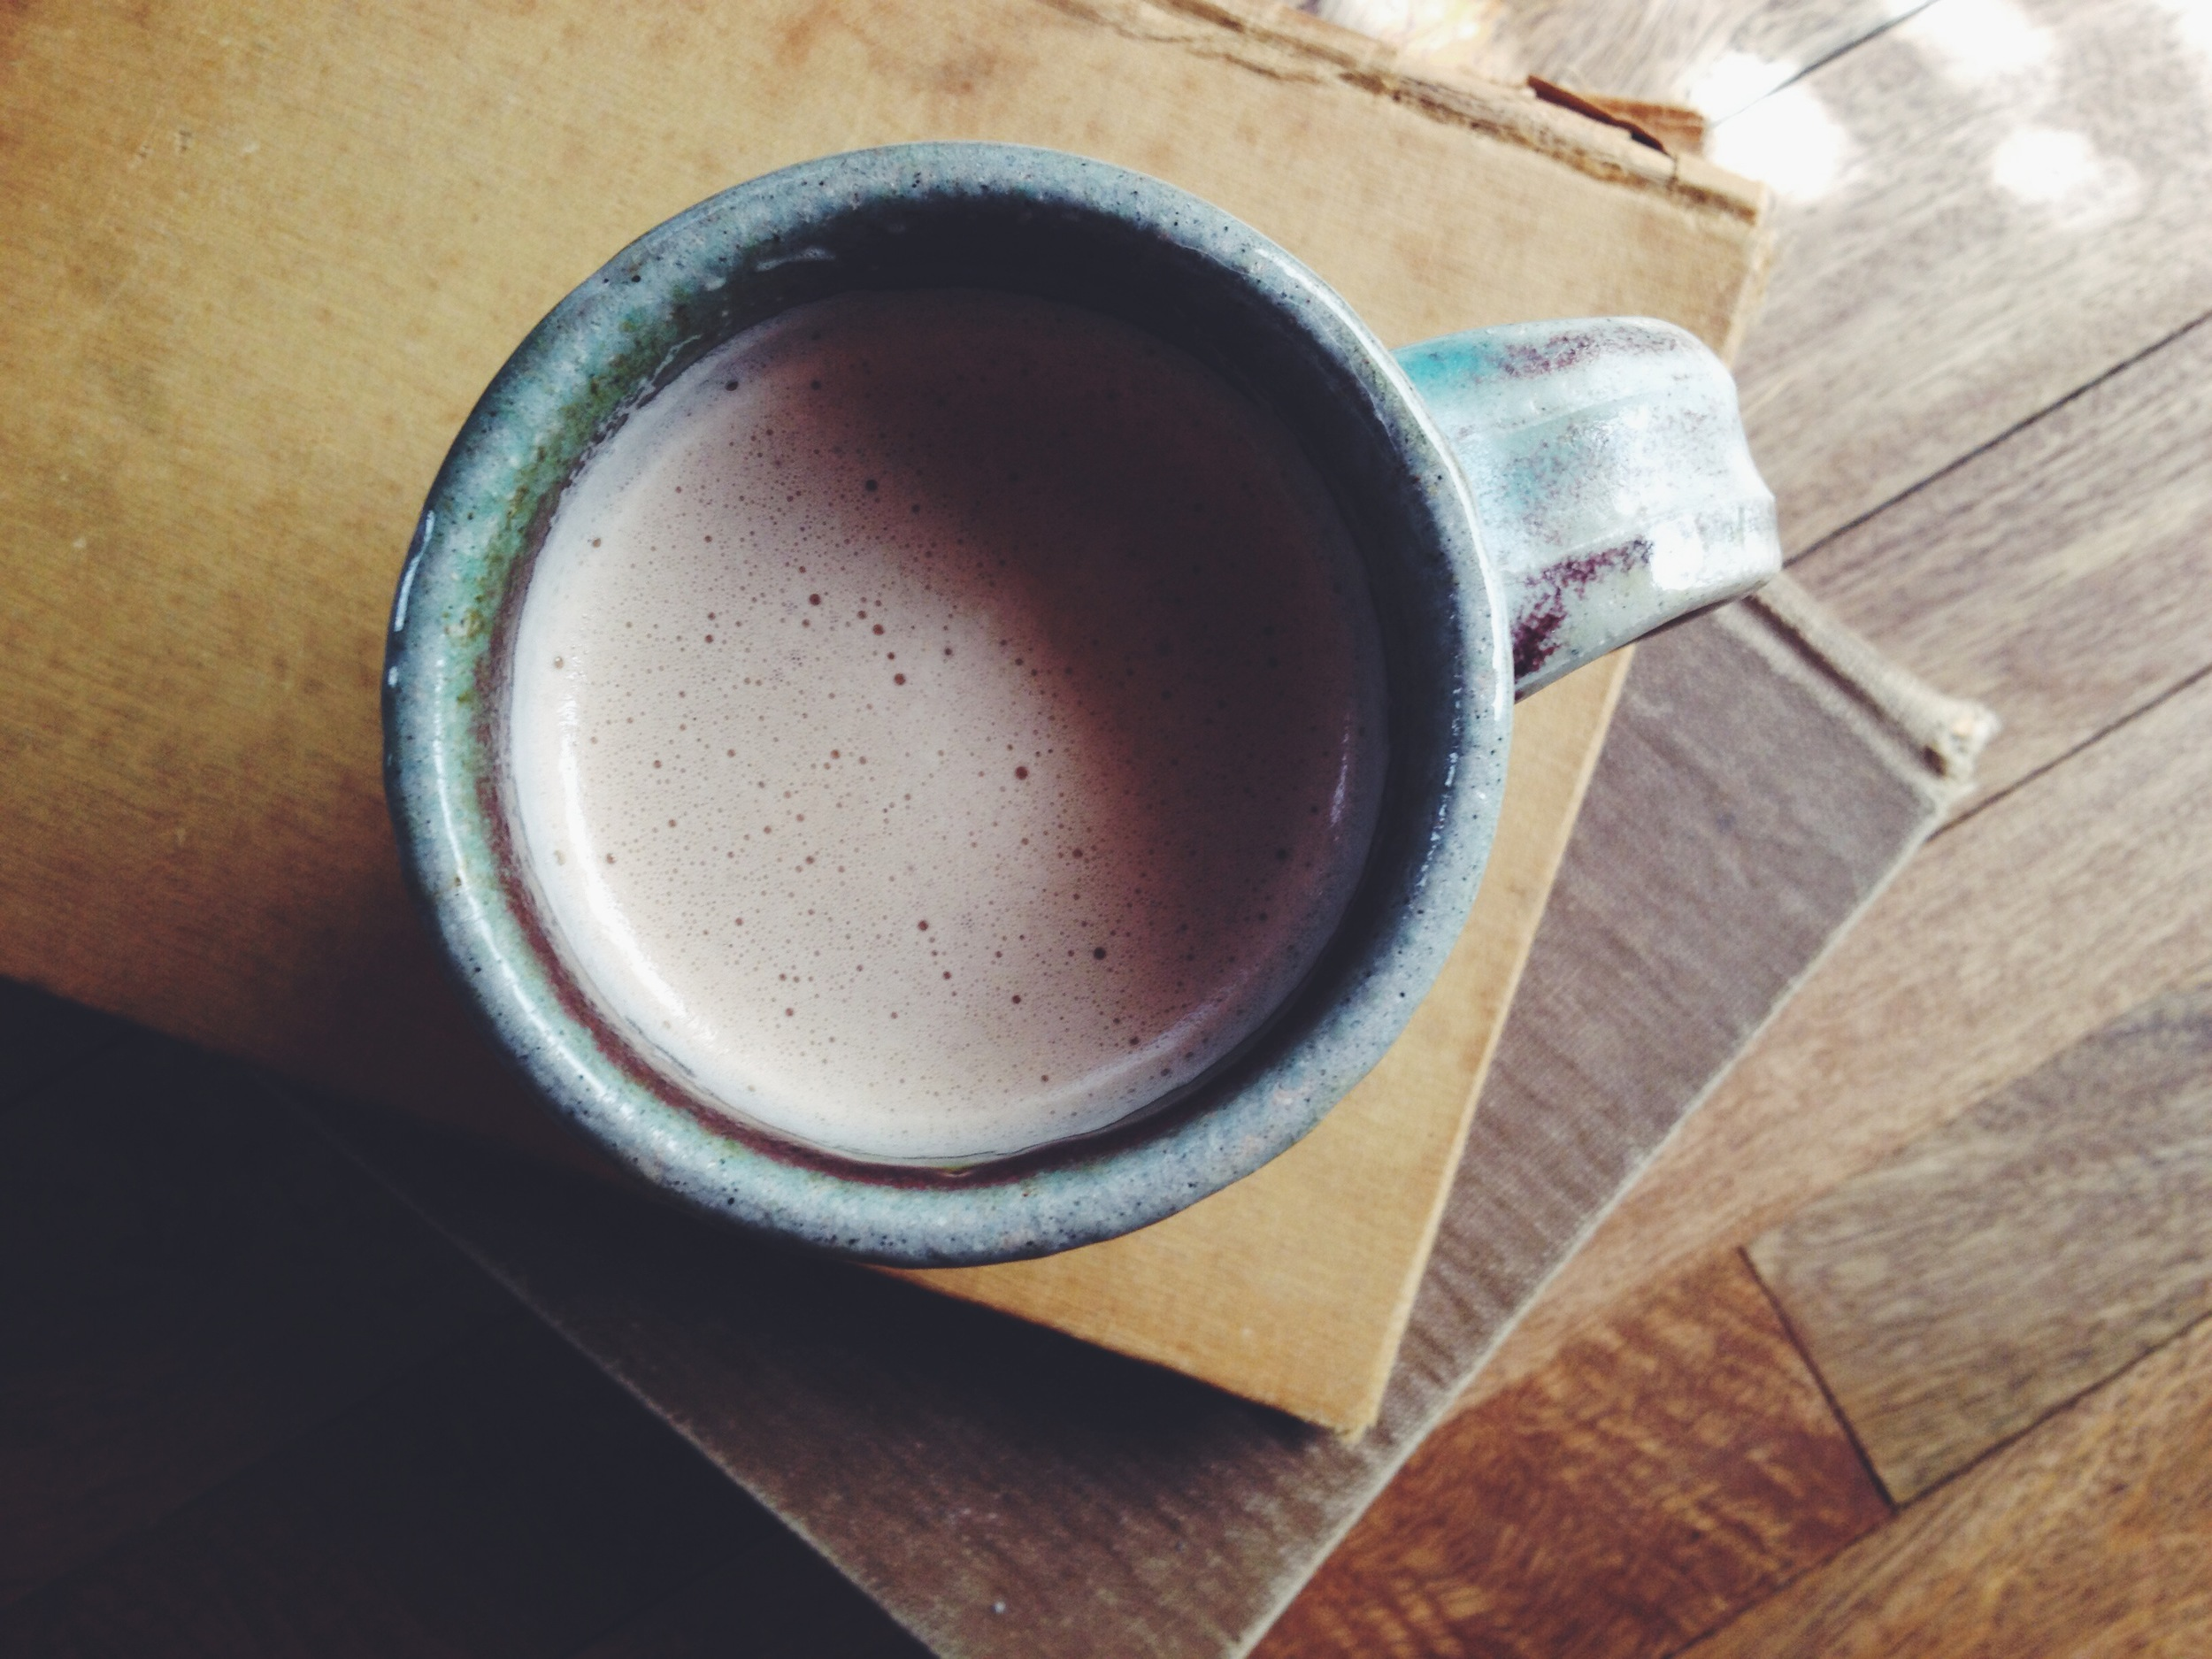 always delighted when my hubby brings me or makes me a latte...